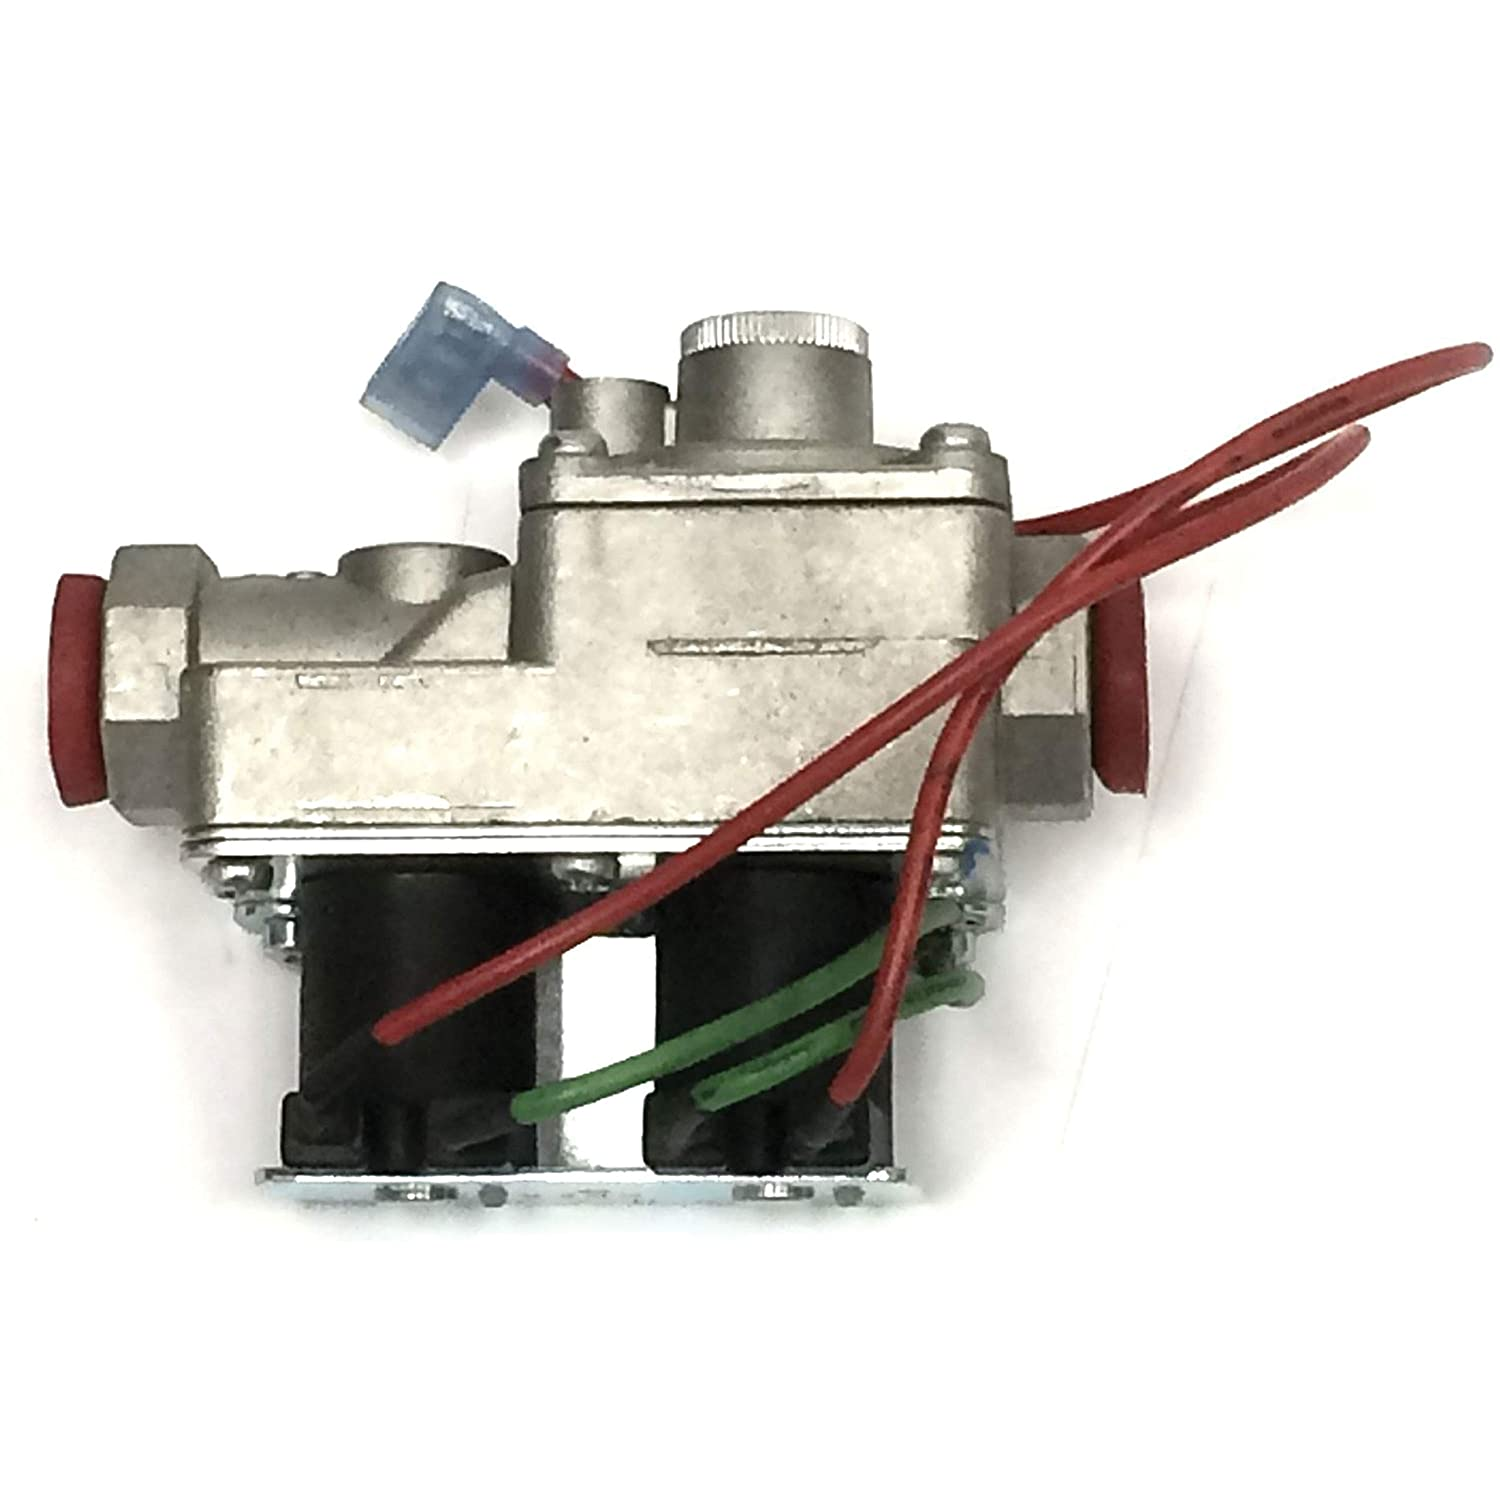 Atwood Mobile Products 90269 Gas Valve Kit 45K Btu Odwh